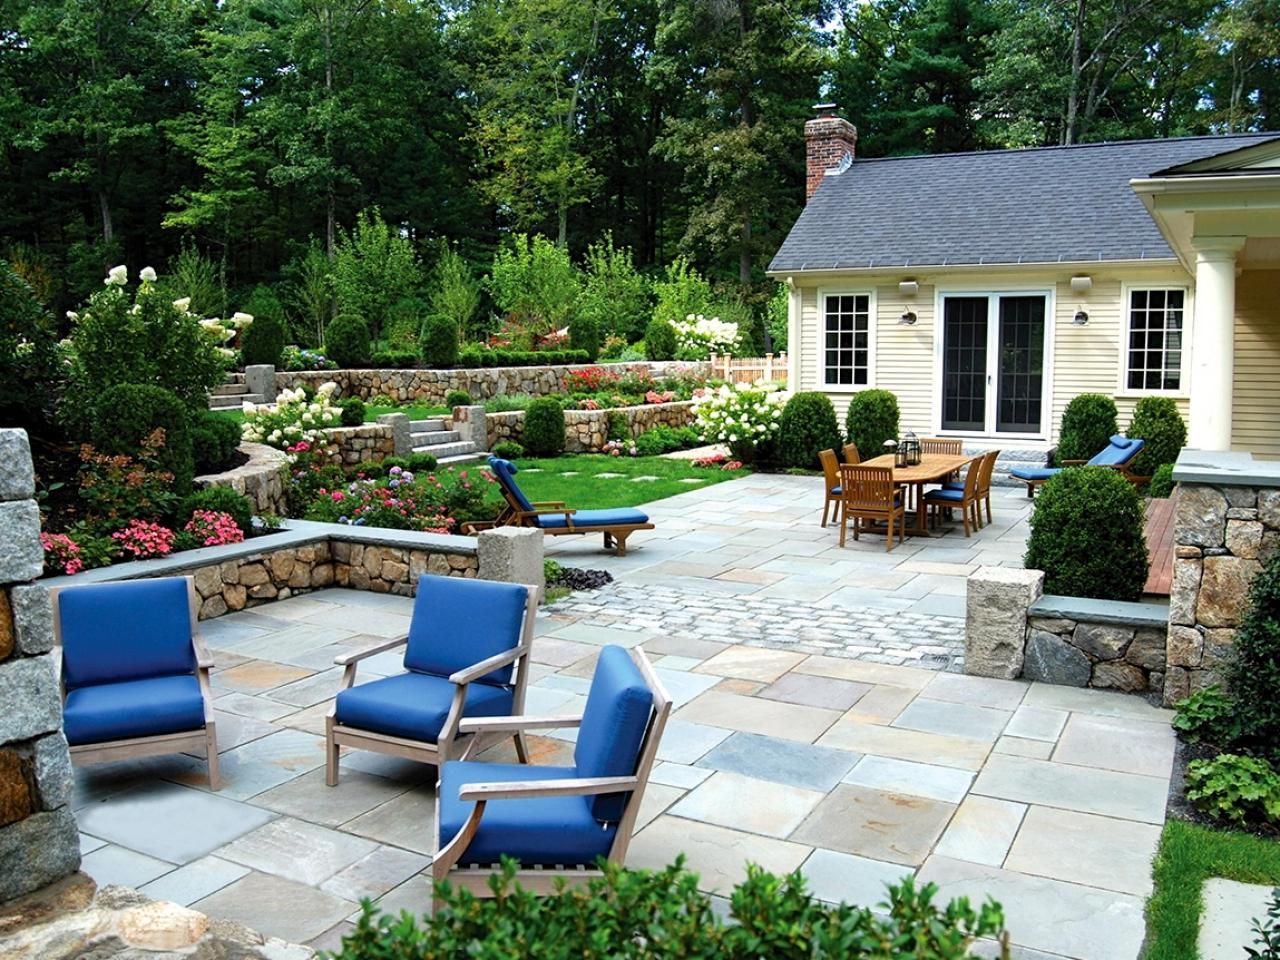 Outdoor Patio Area For Elegant Home Design With Fresh Courtyard